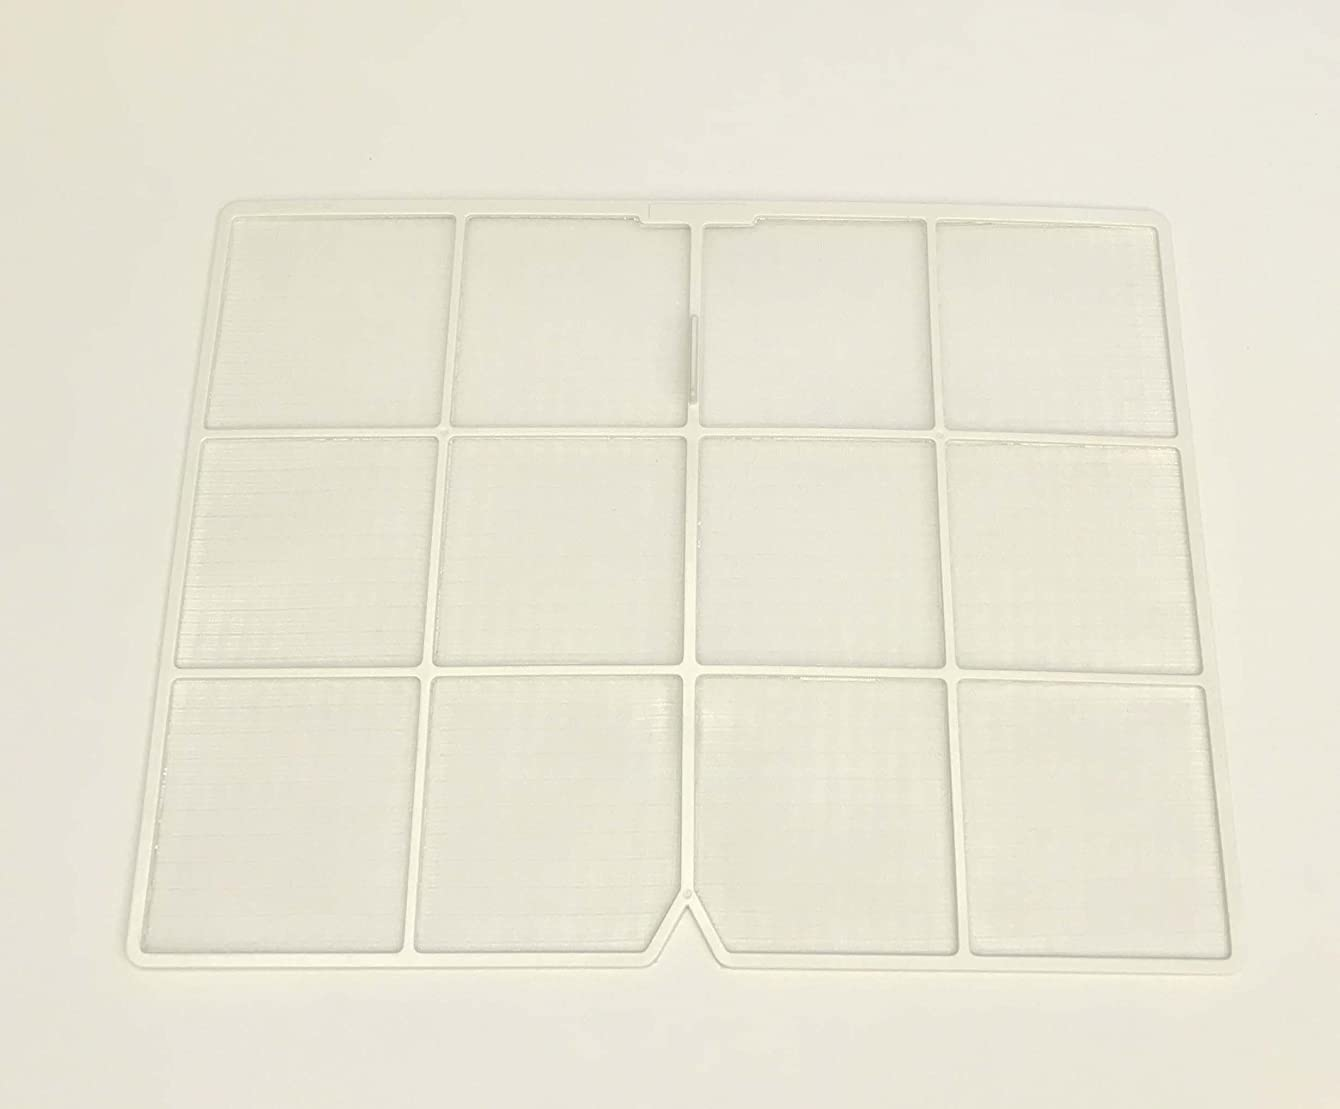 OEM LG Air Conditioner AC Filter Specifically For LW-C1011CL, LWC1012CL, LW-C1012CL, LWC1014CL, LW-C1014CL, LWC1014CN